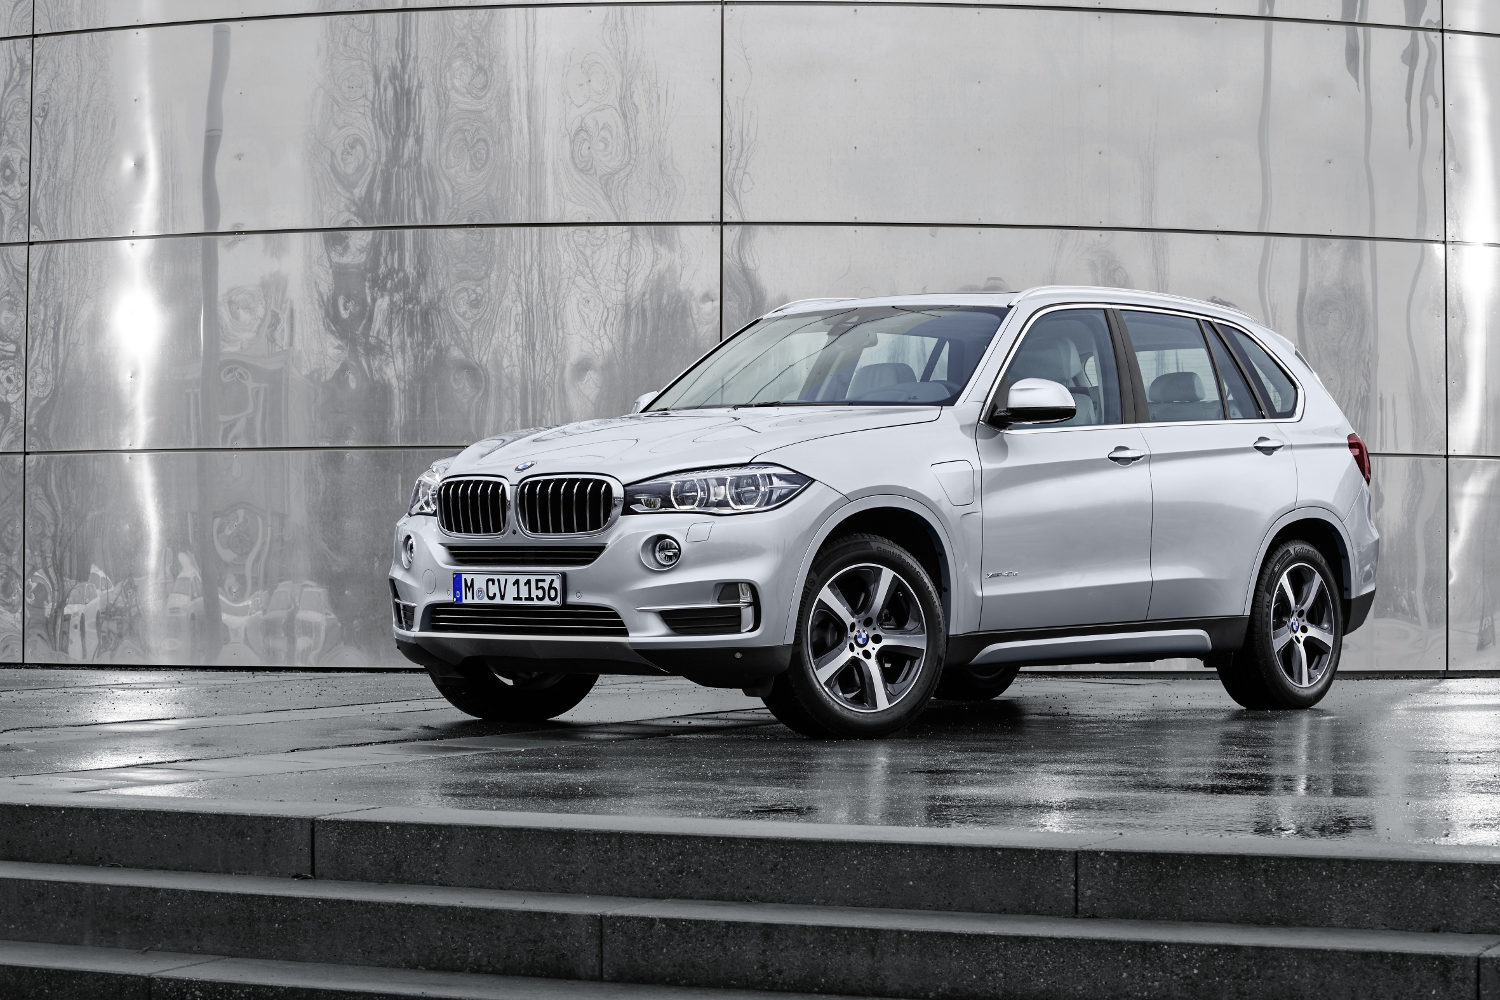 Comparison Bmw X5 Xdrive50i 2016 Vs Bmw X5 Edrive